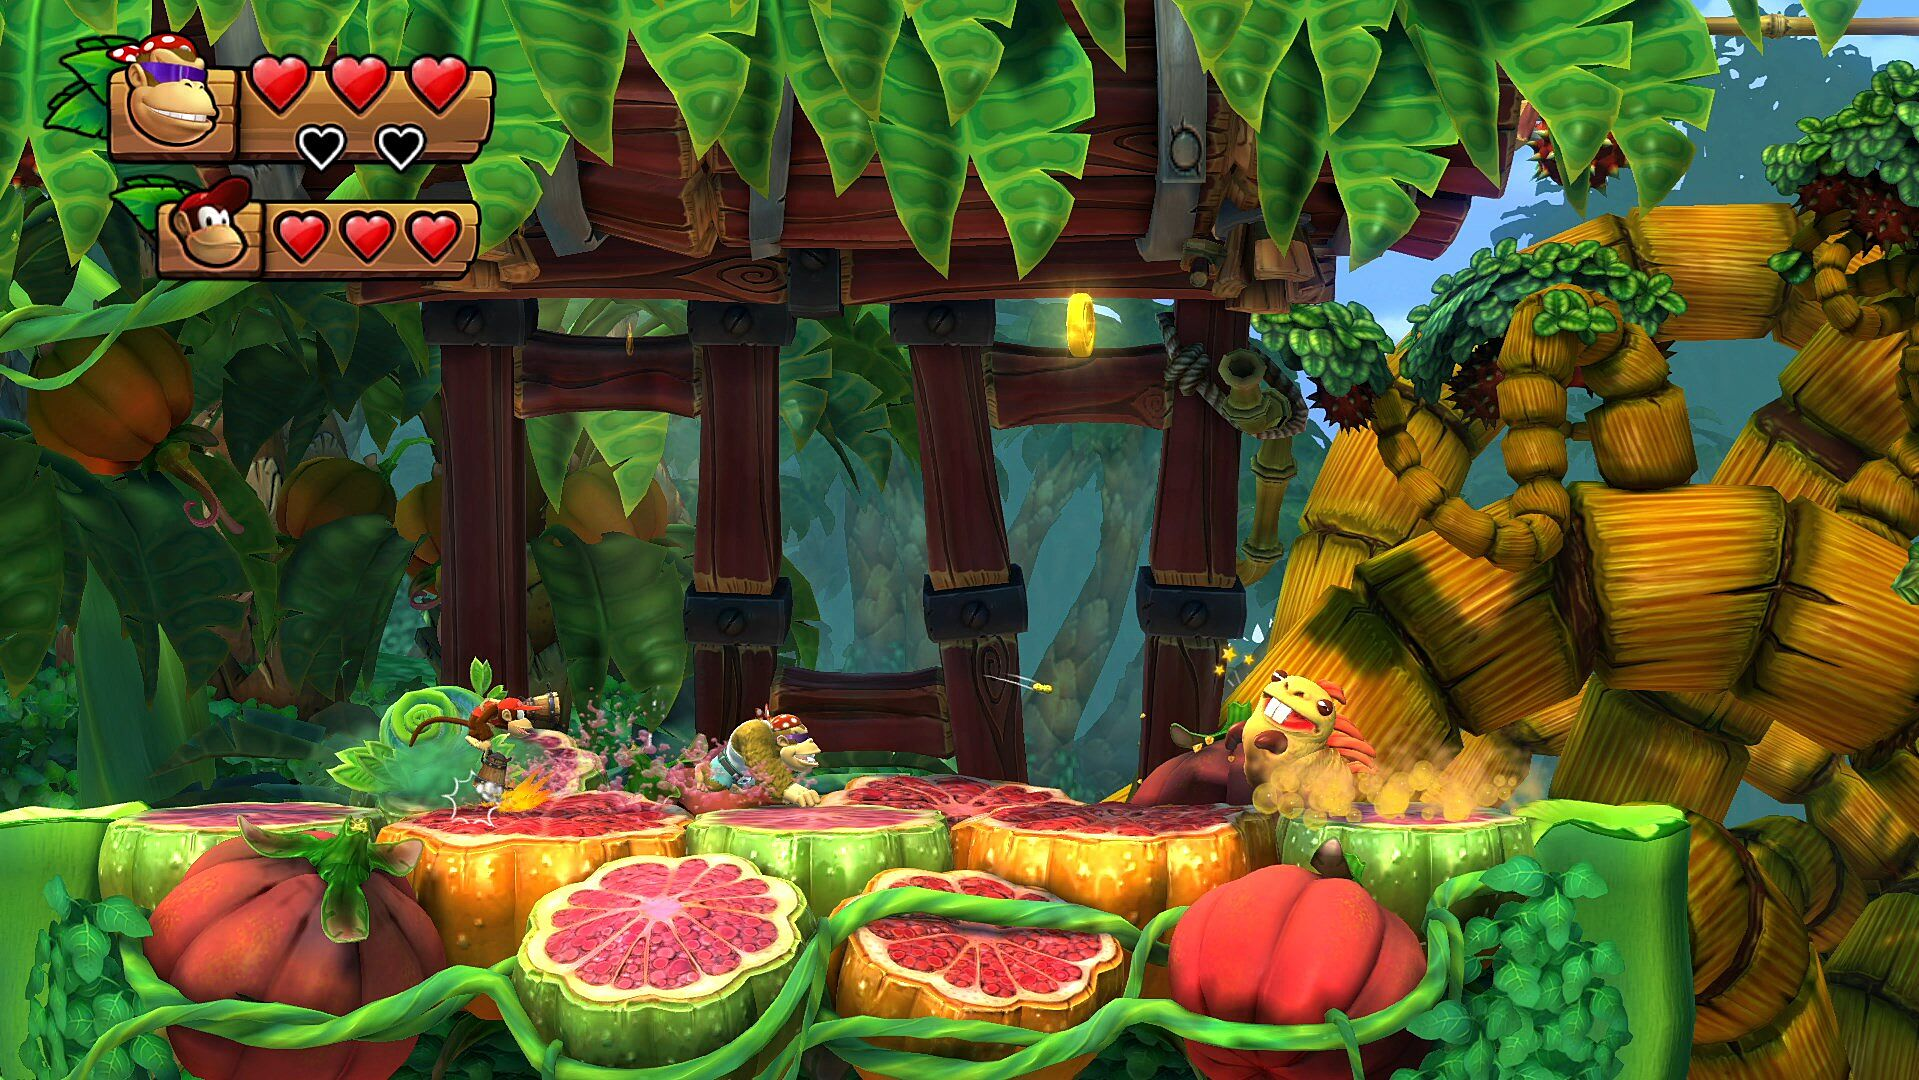 Donkey Kong Country: Tropical Freeze review - Play that funky music